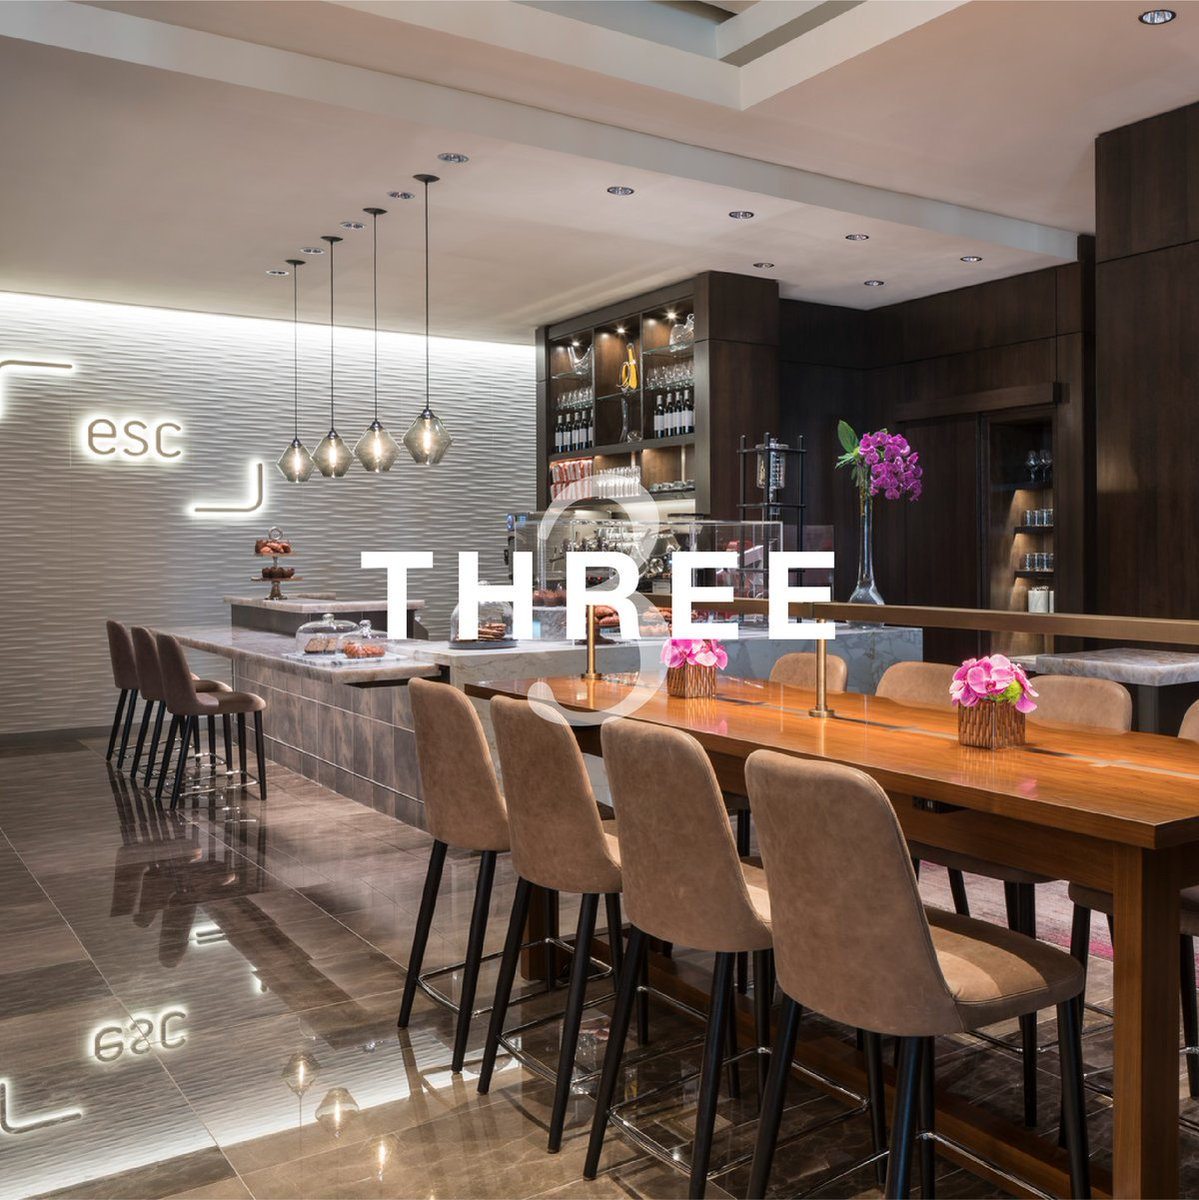 What do you have brewed up this autumn? In just three days, [esc]—our morning coffee spot—opens along with the rest of our hotel. https://t.co/eo2605pmSI